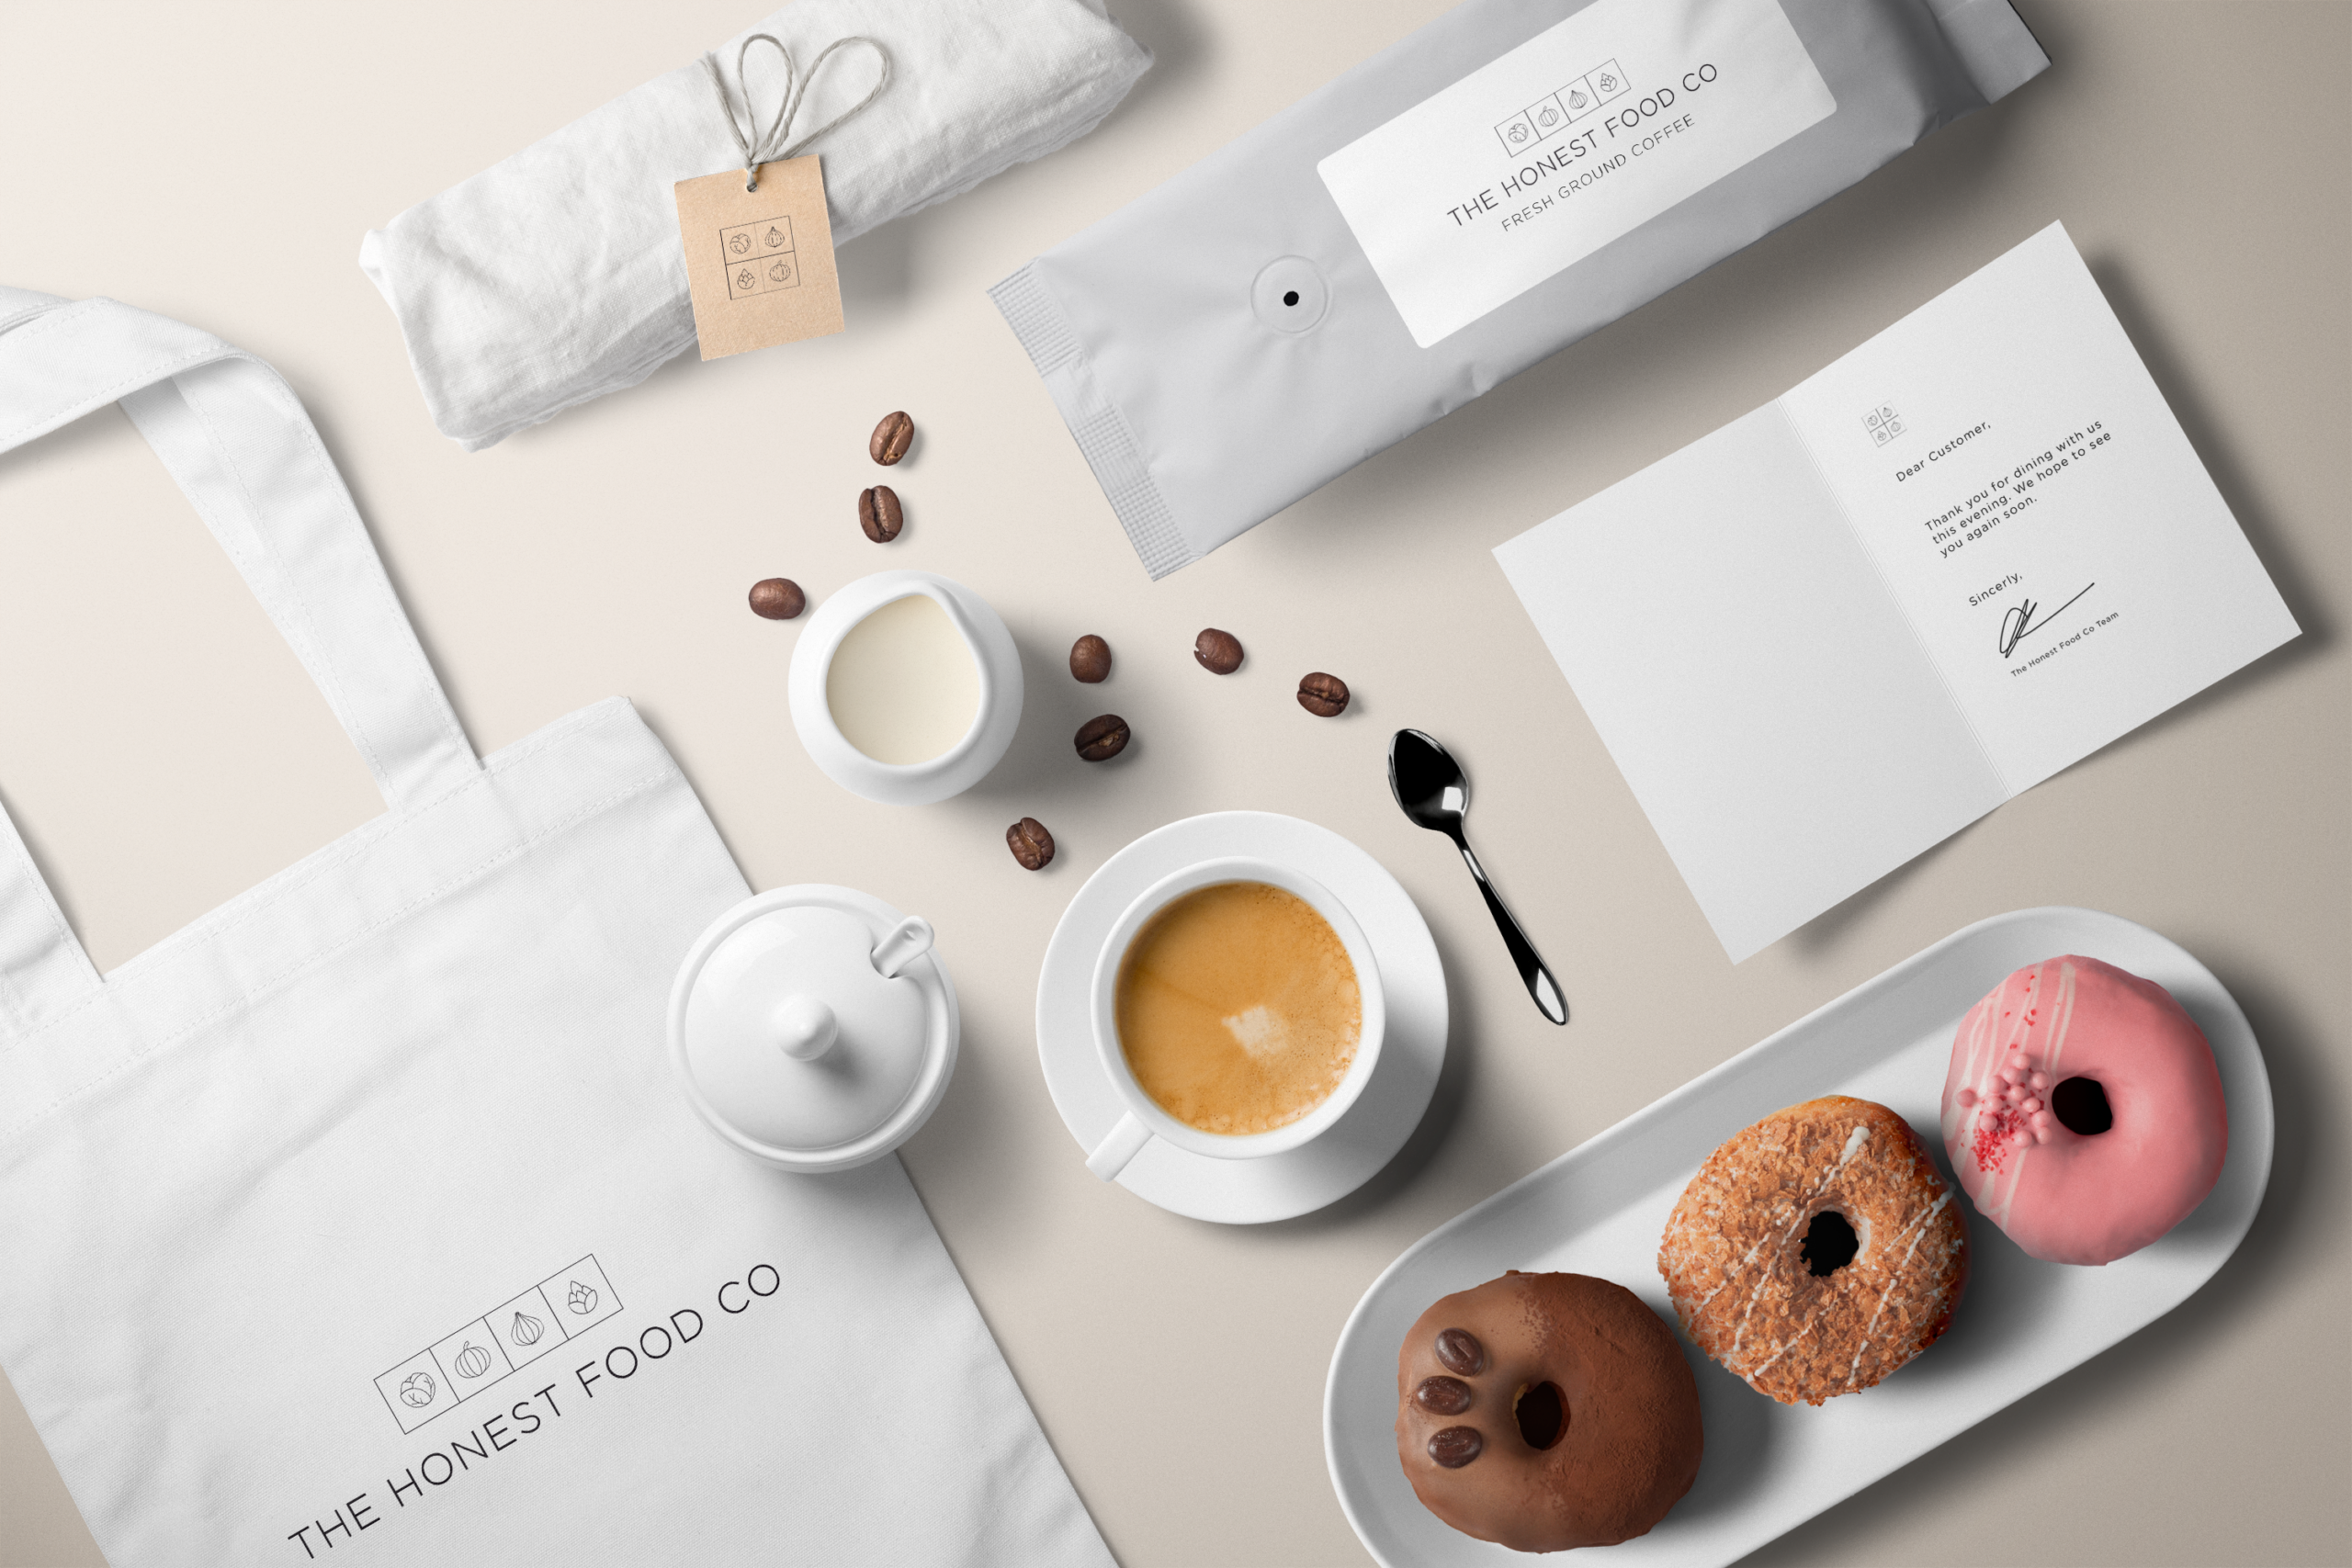 Demonstration of the design work Ace Digital created for The Honest Food Company